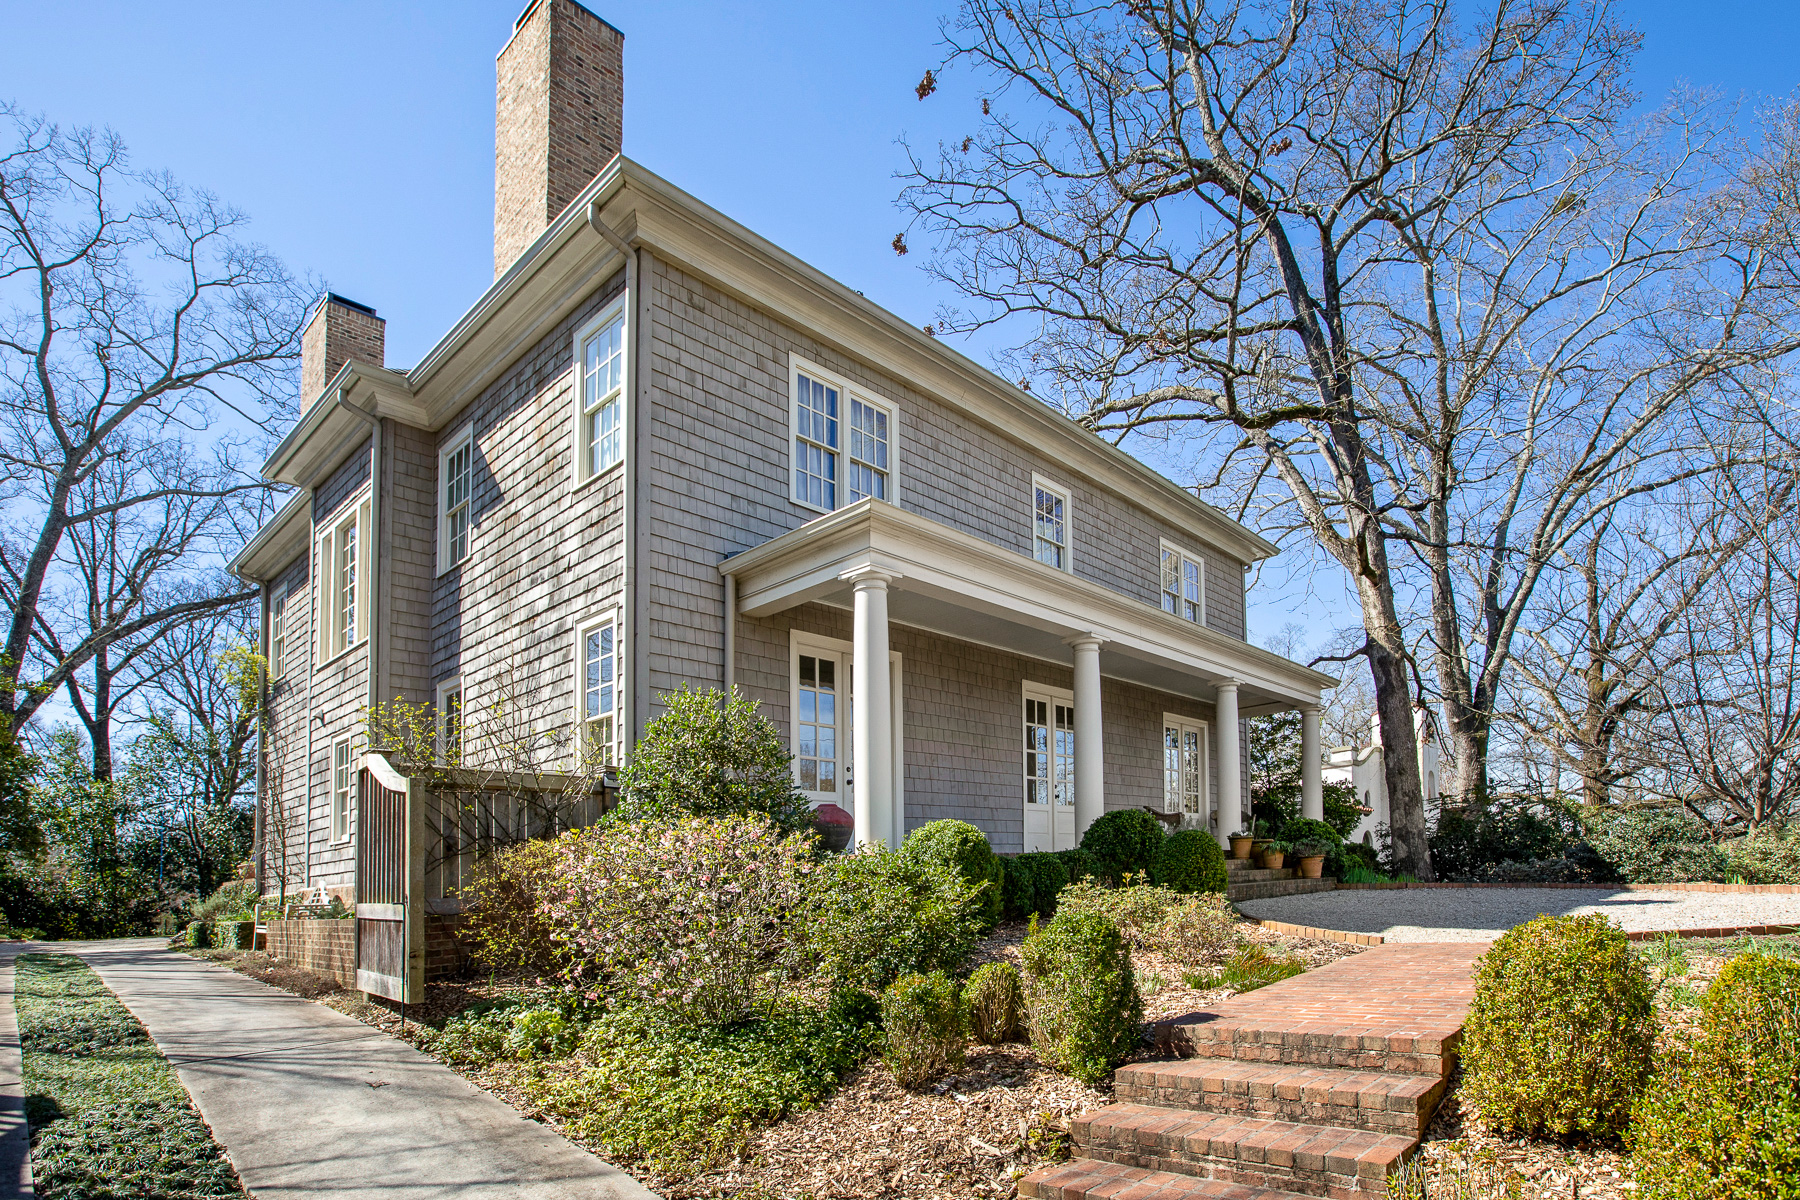 1_231 Lakeview Ave Ne, Atlanta, GA 30305-2.jpg